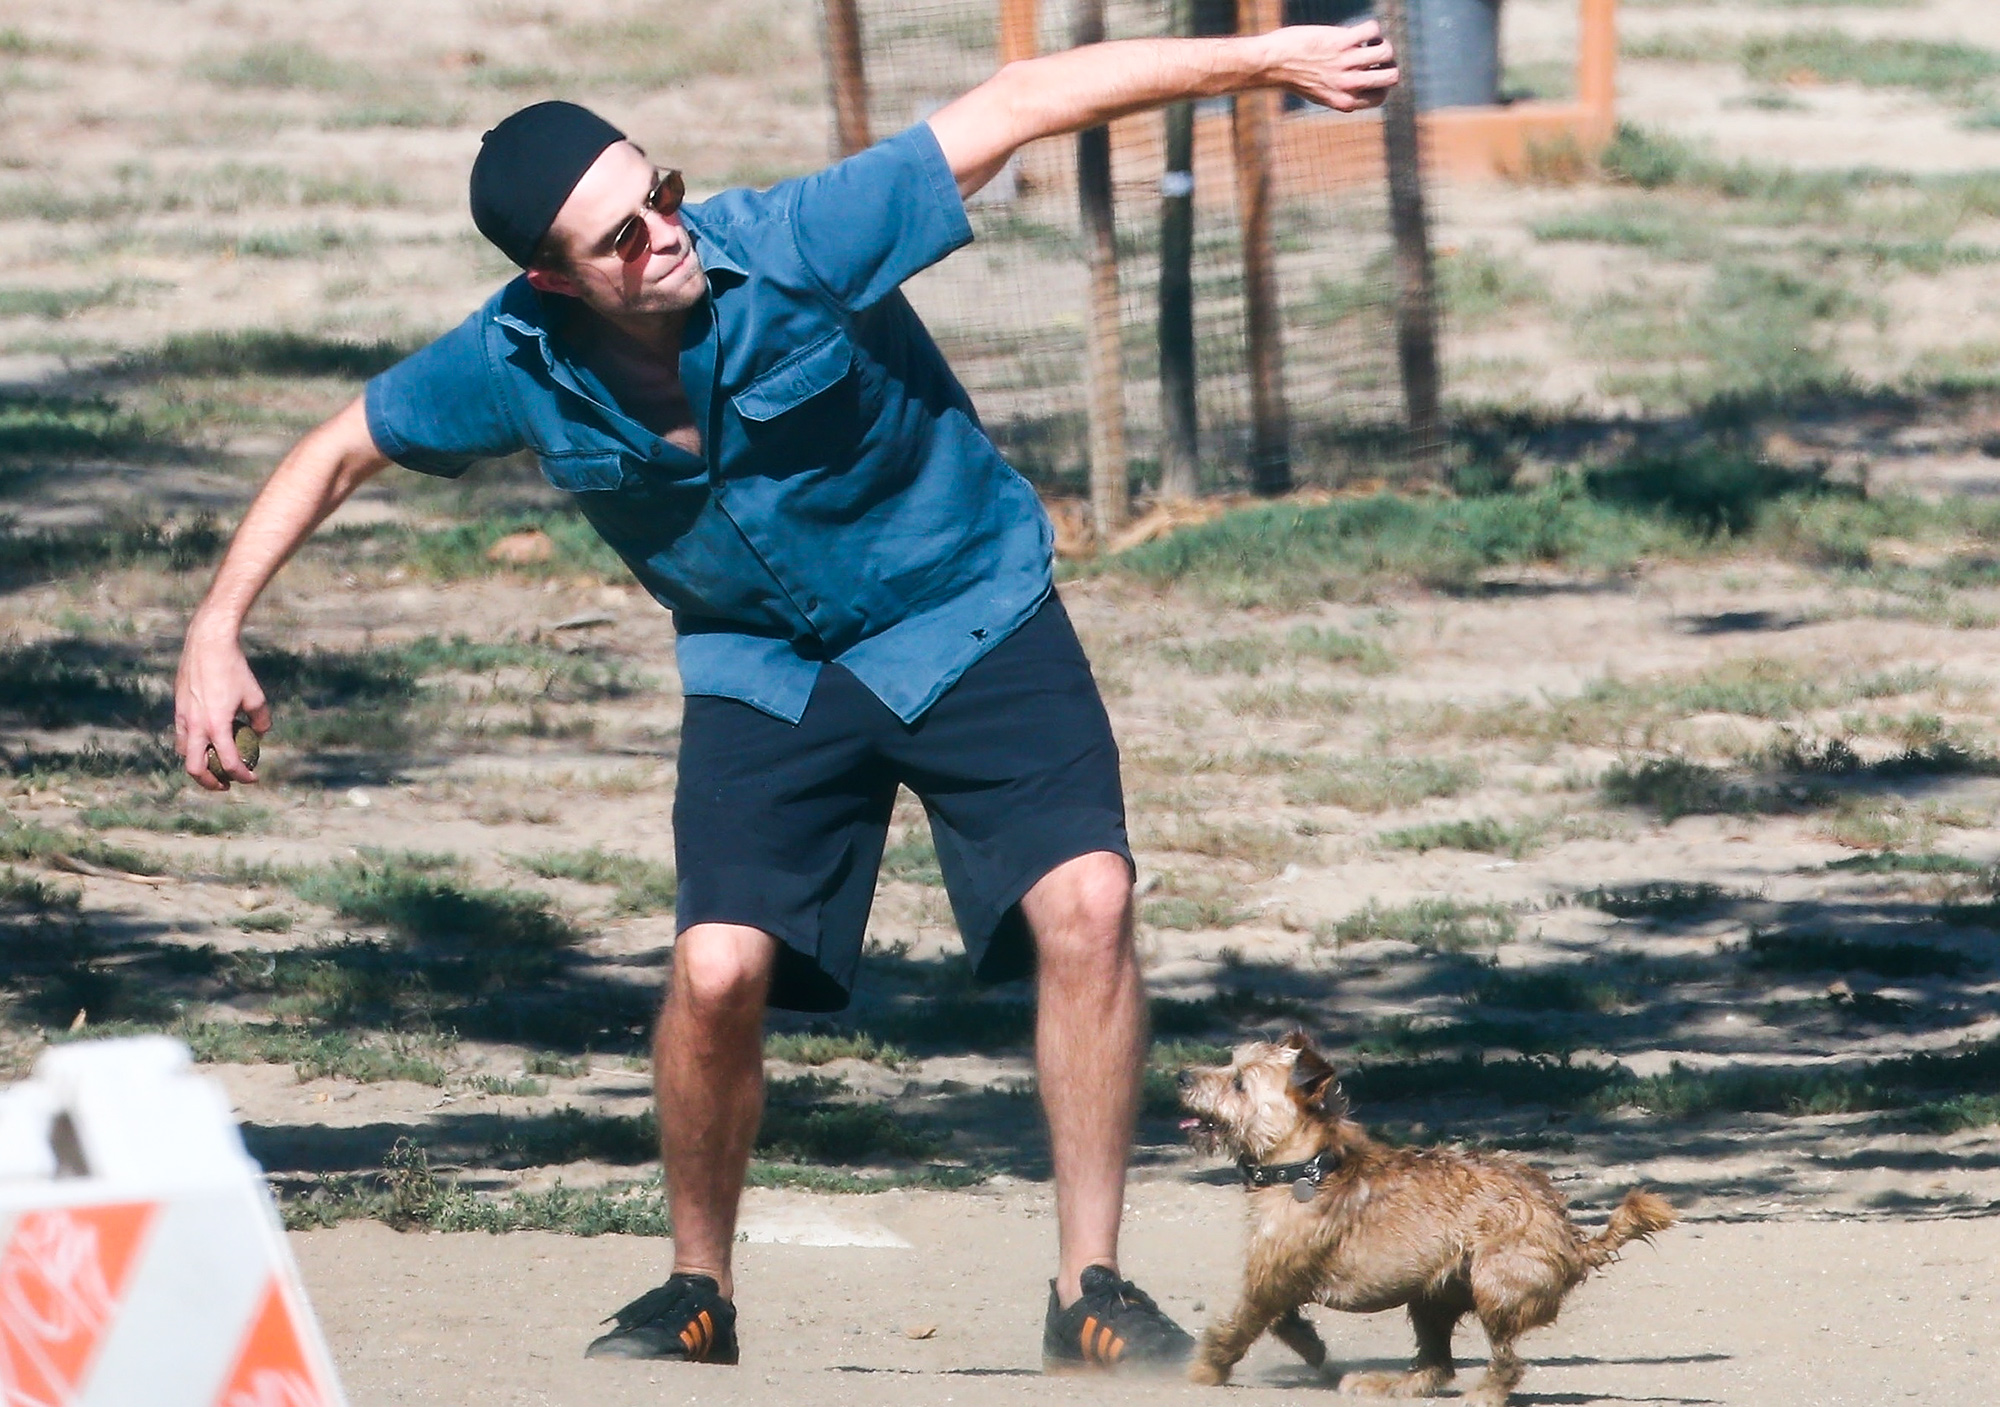 *EXCLUSIVE* Robert Pattinson spends his Monday morning at the dog park